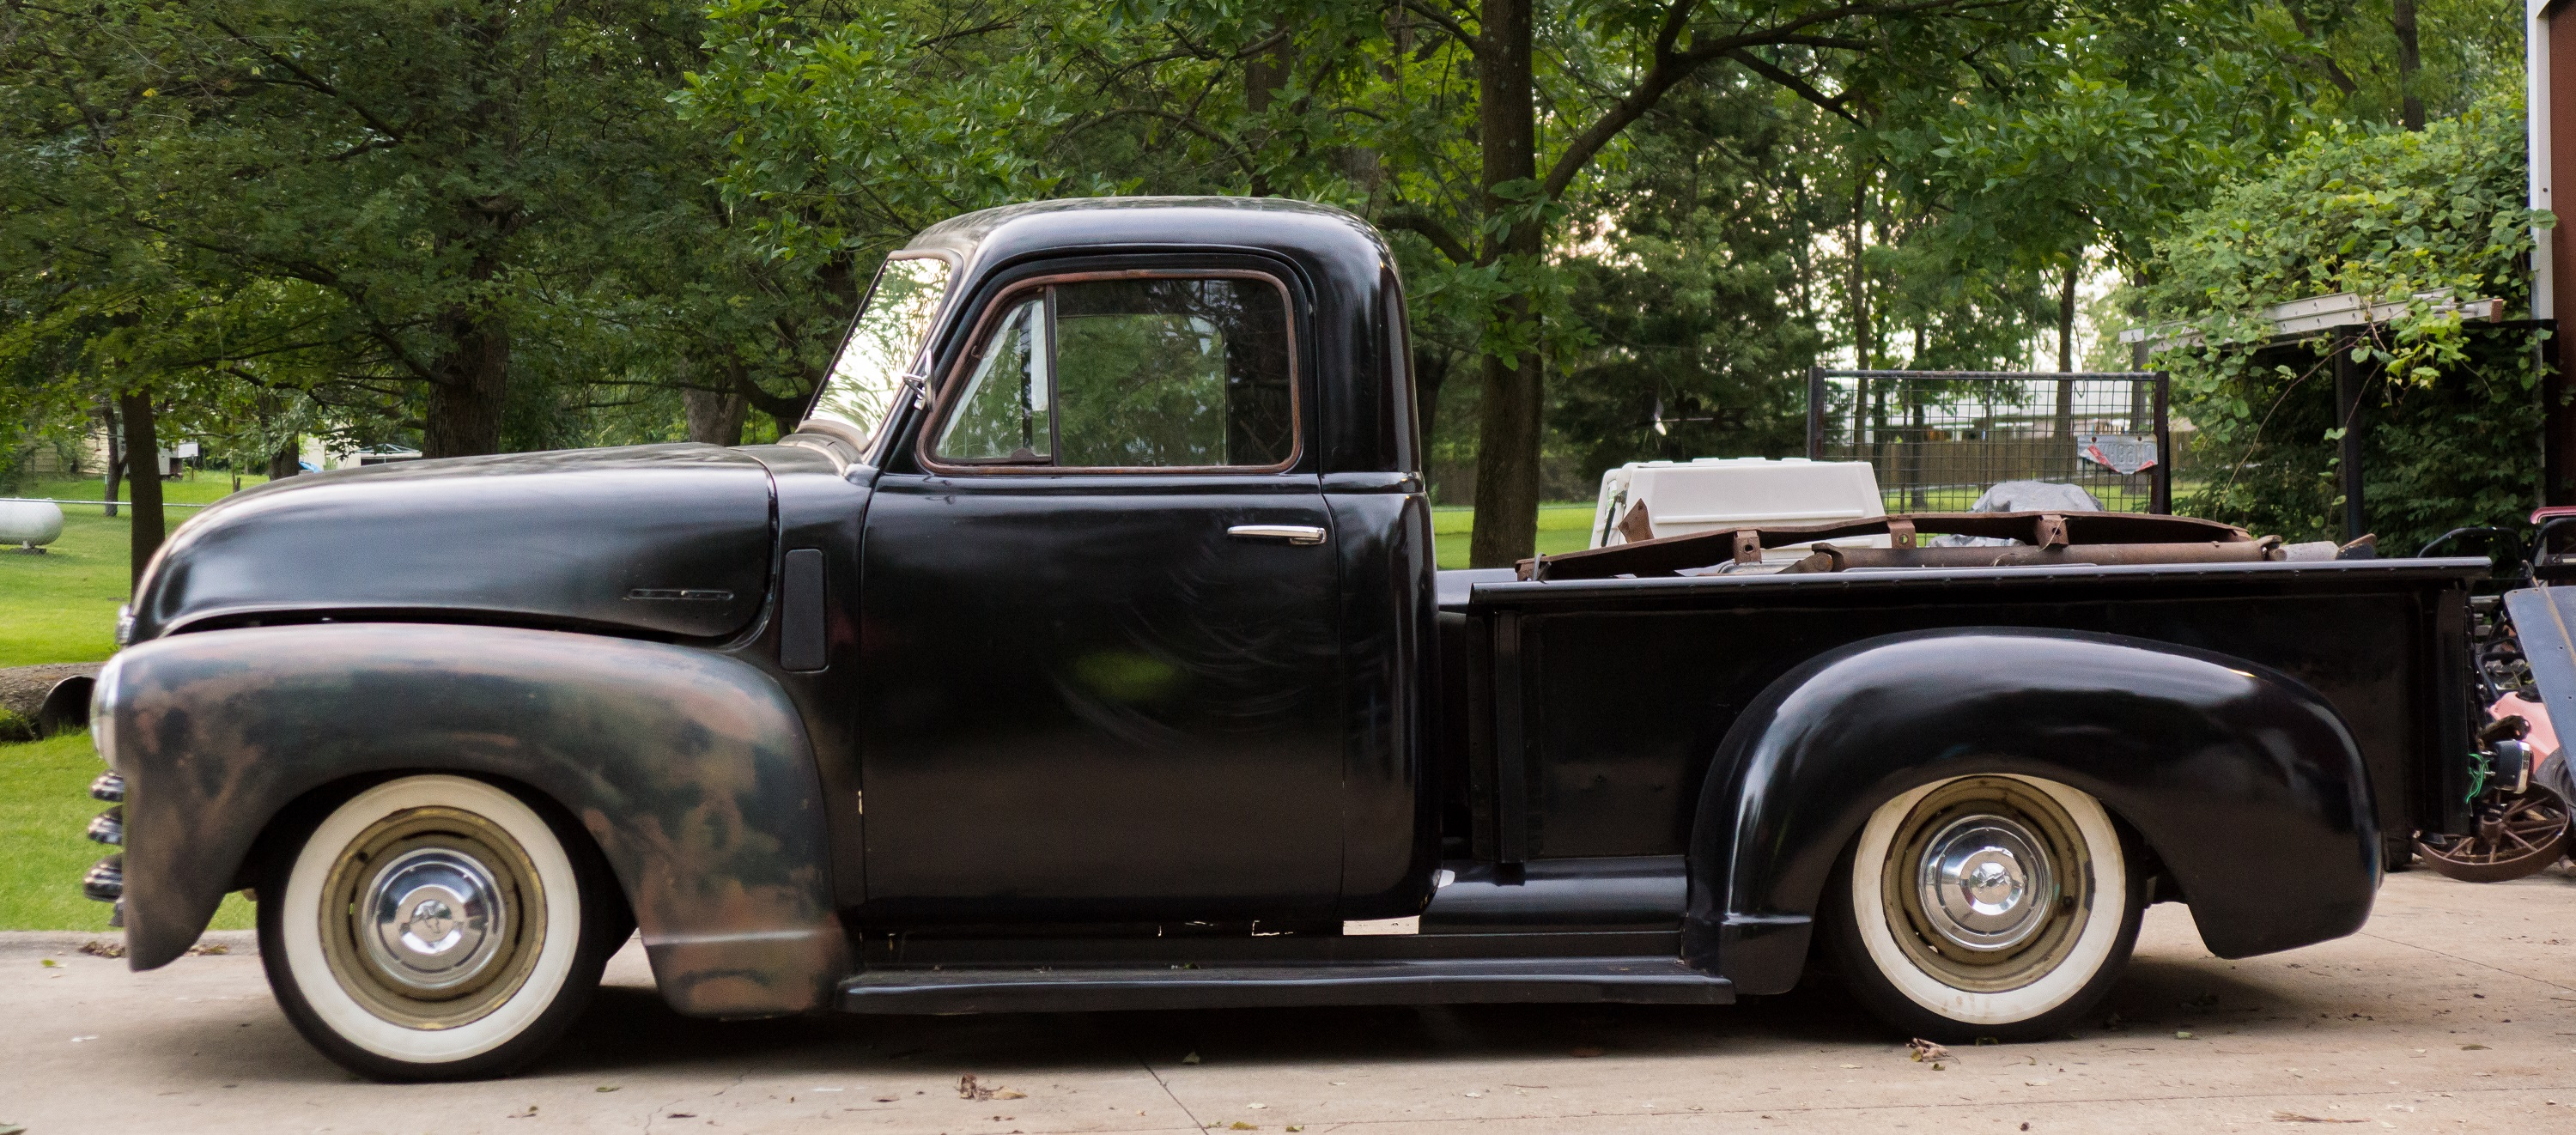 1947 Chevy Truck 3 Window Shortbed The H A M B